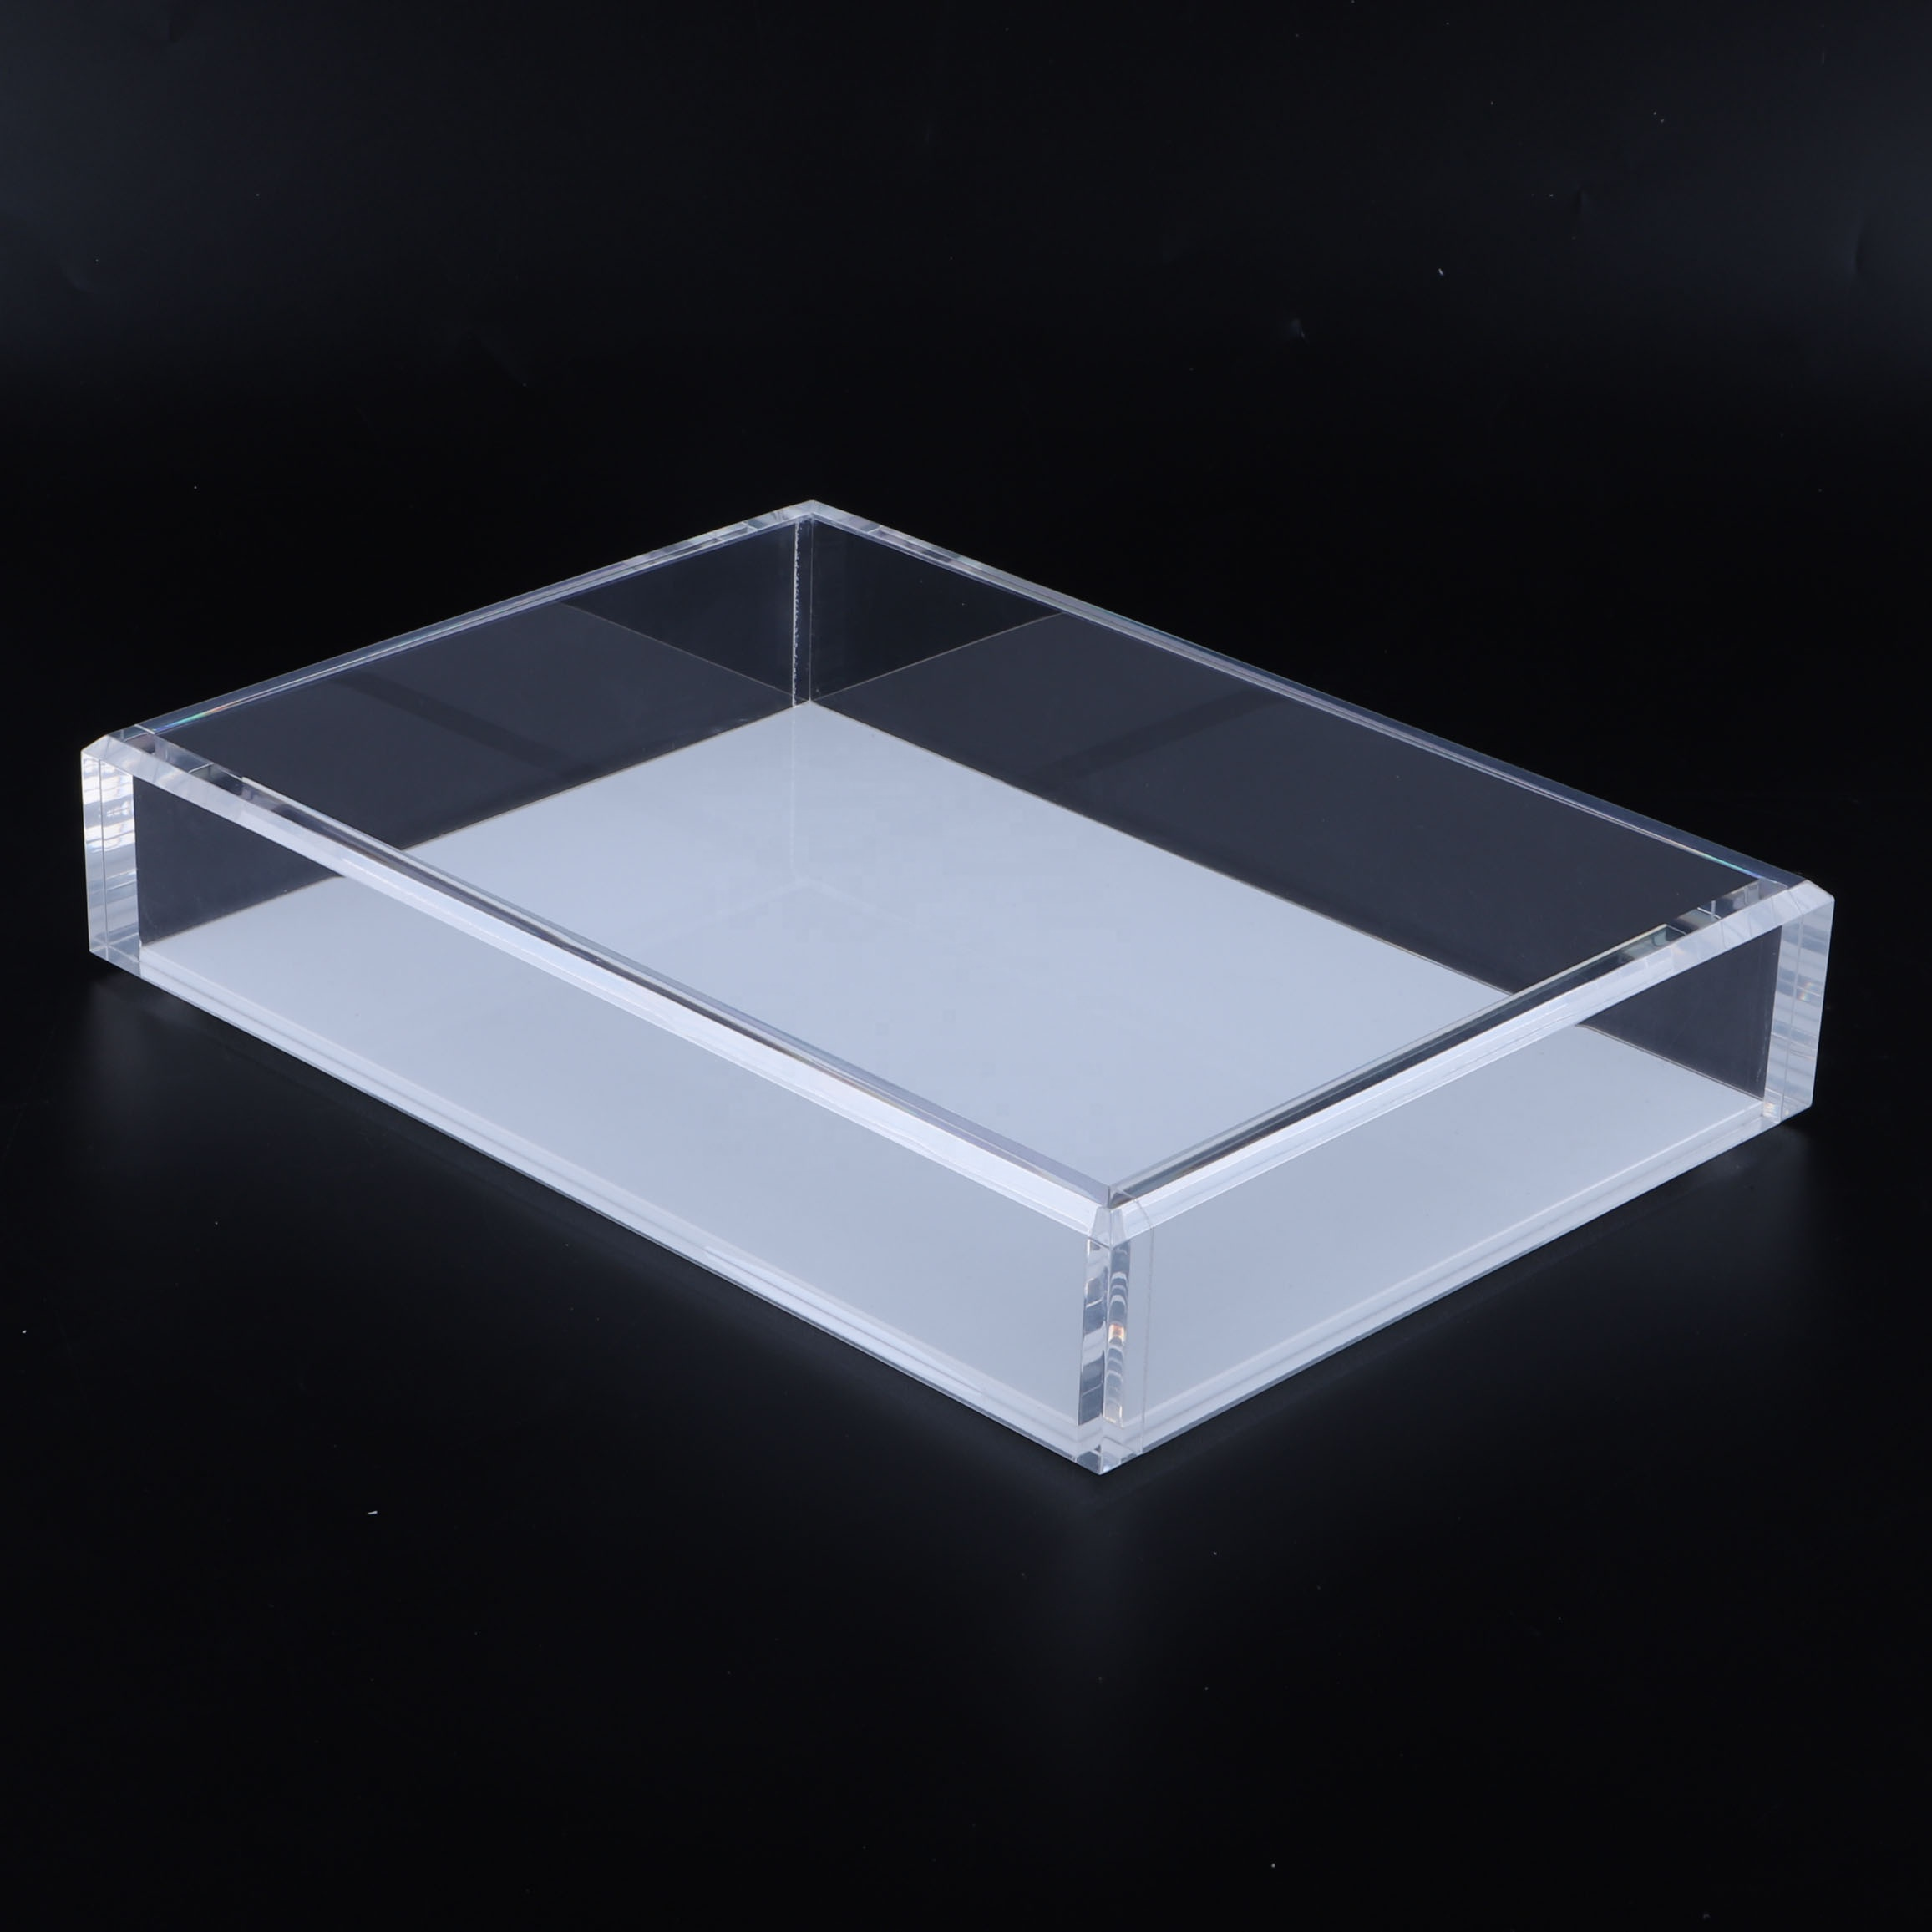 Home decoratieve lucite acryl crystal clear organizer tray